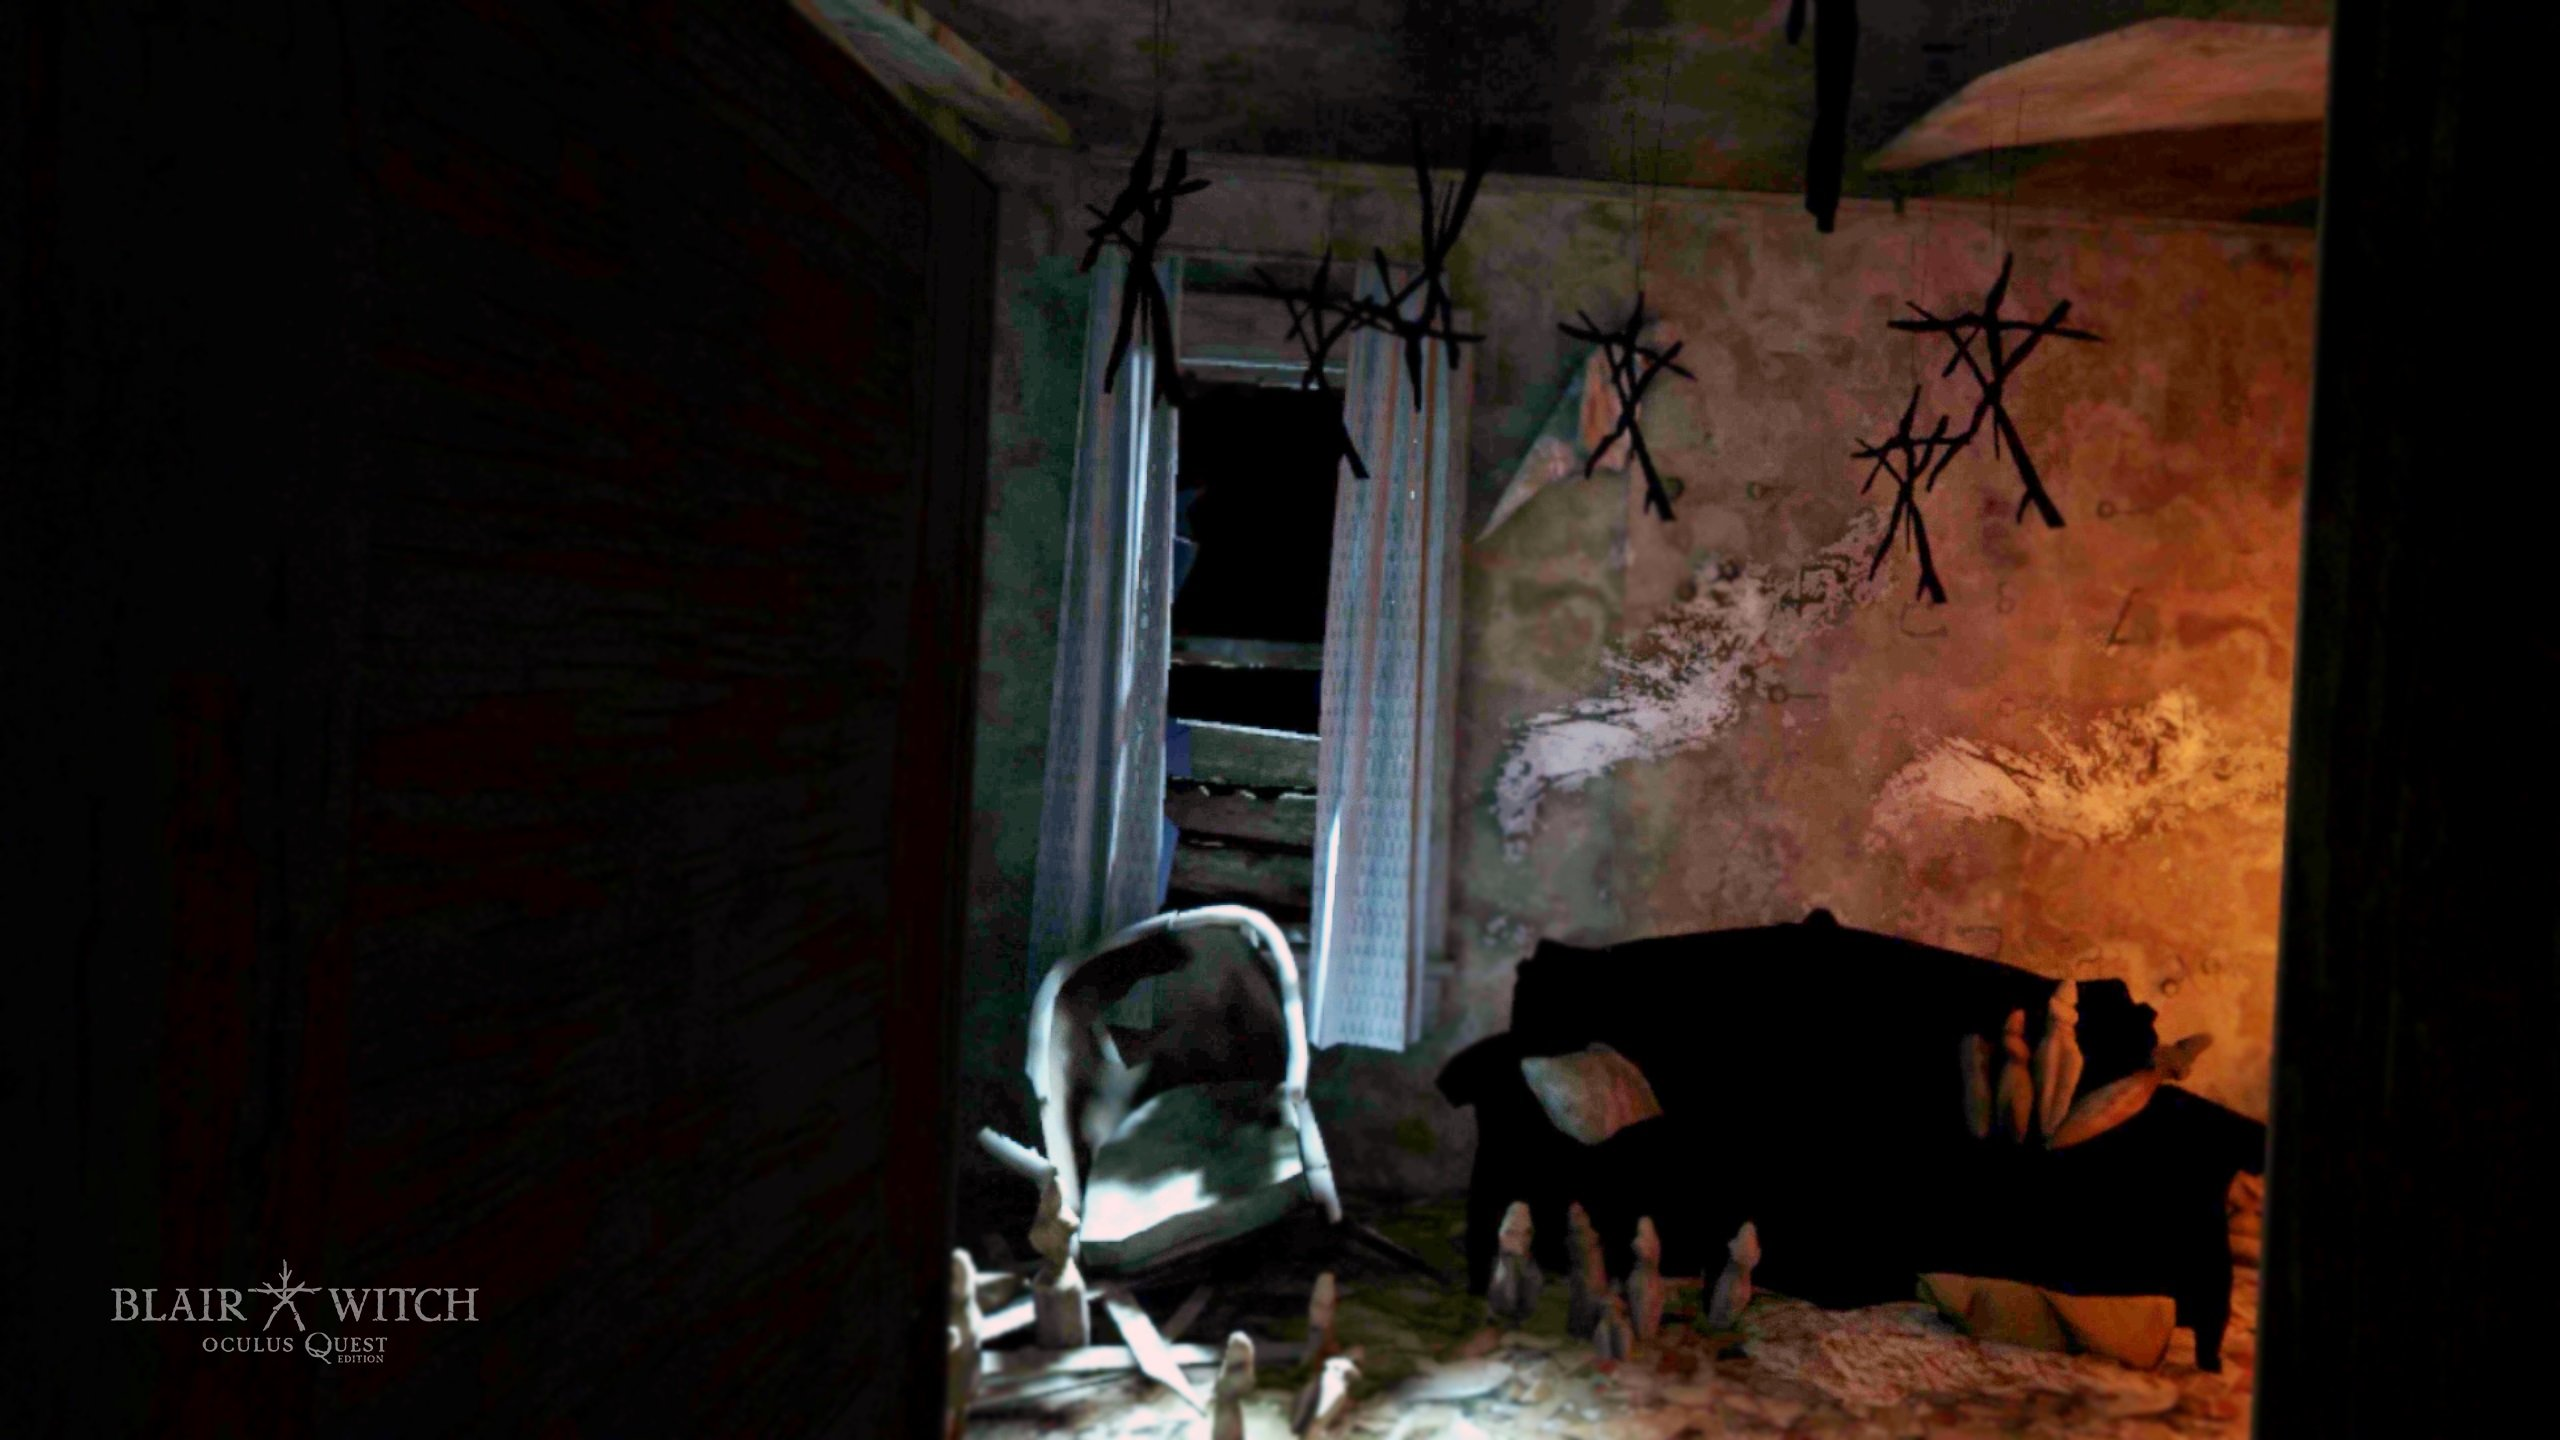 Blair Witch in VR is gonna be a big nope nope nope nope hell nope from me screenshot